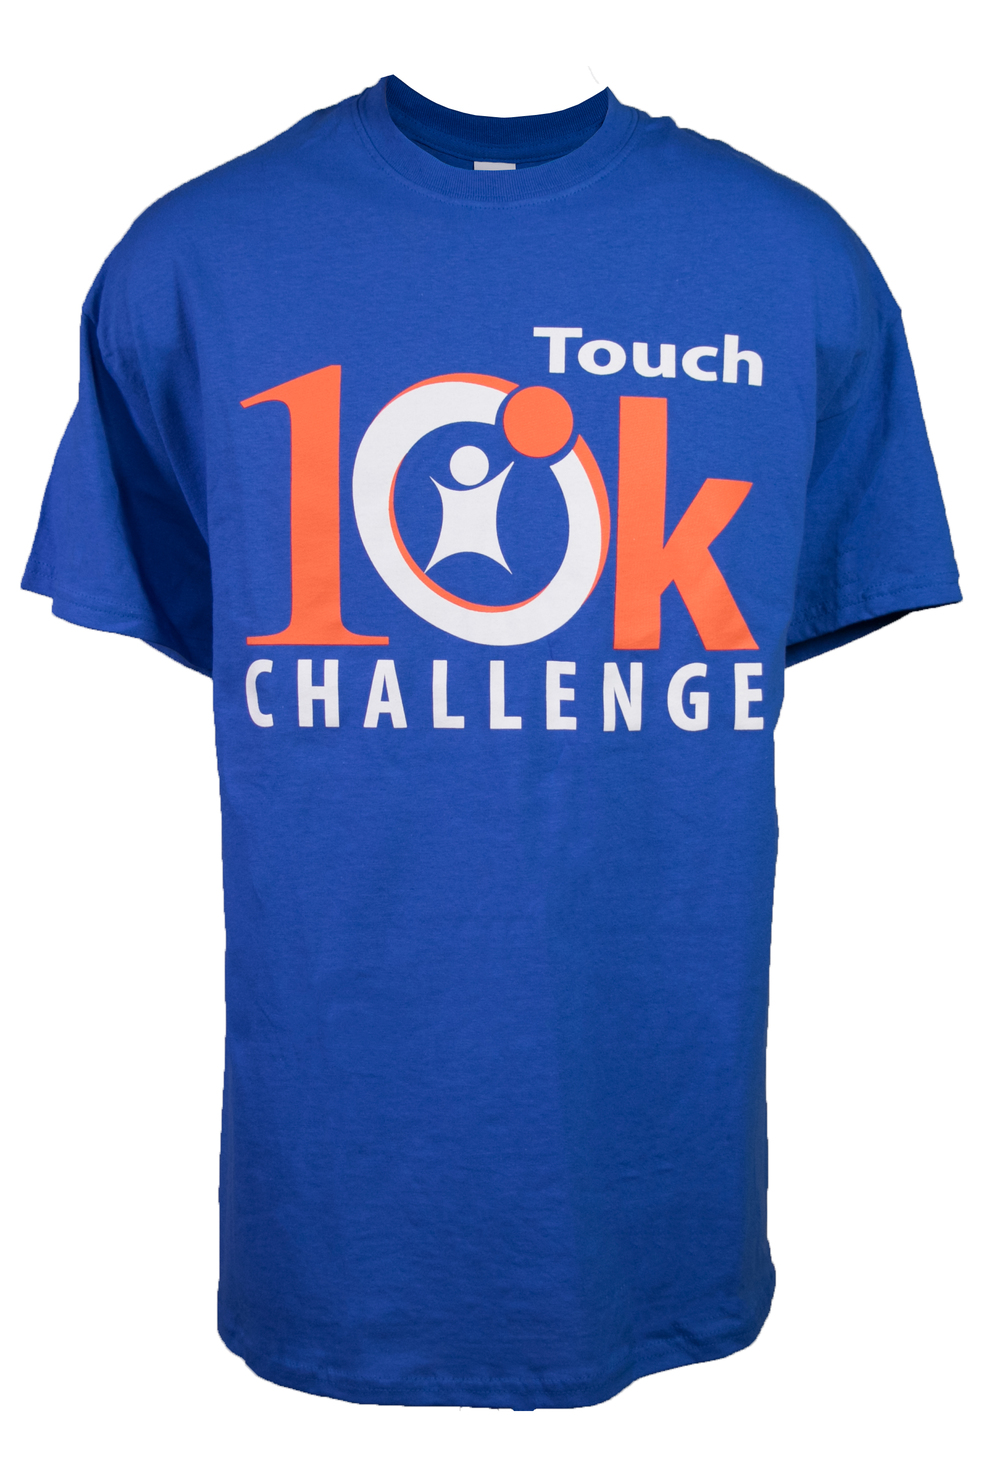 Touch 10K Challenge T-shirt